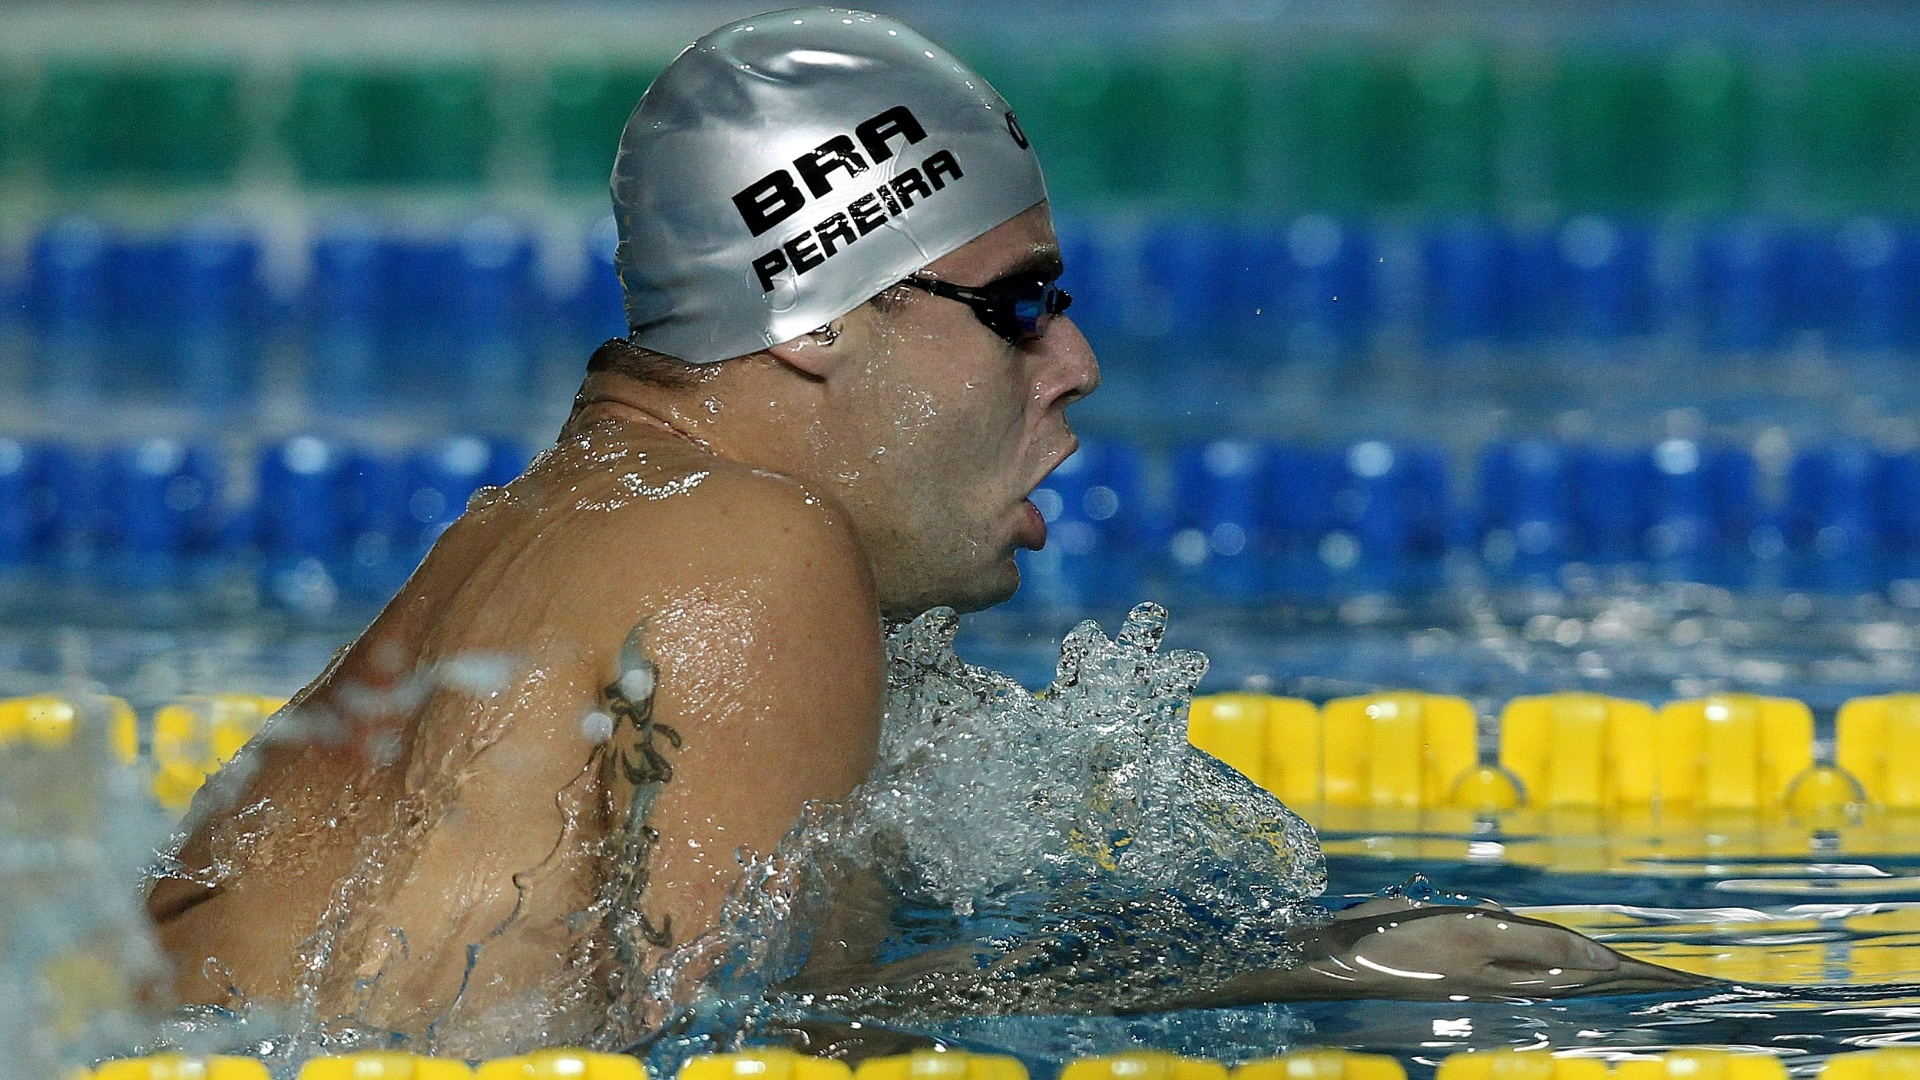 Thiago Pereira terminou na 2 colocao da sua bateria nos 400m medley (15/10/2011)